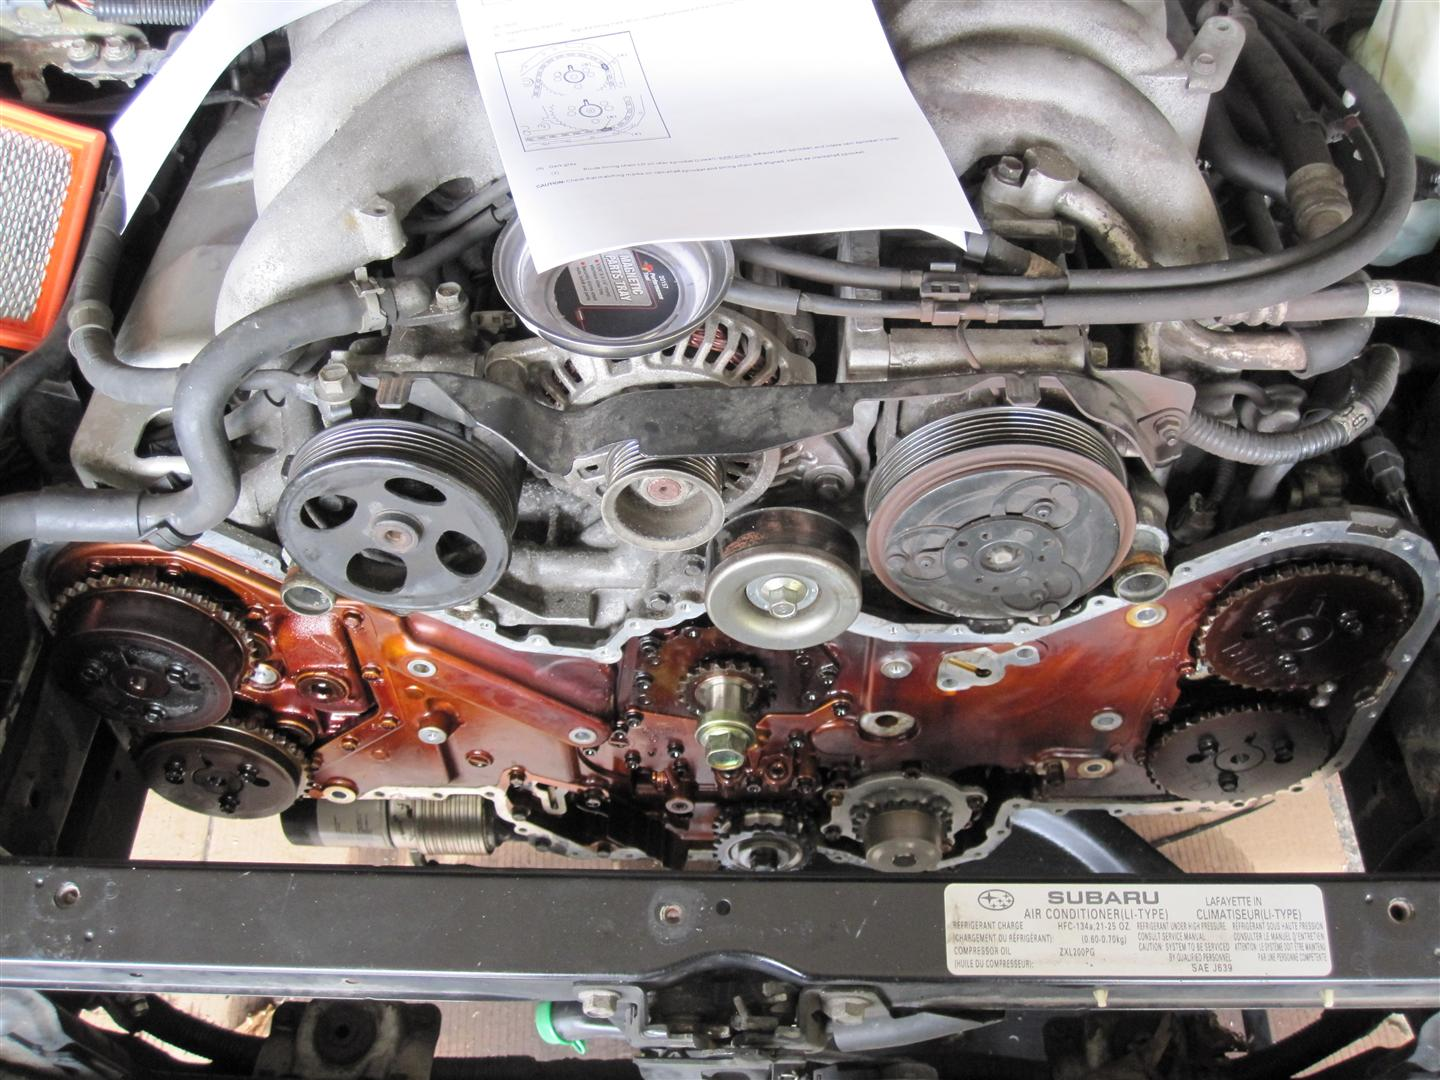 Ll Bean Subaru >> 3.0 H6 Timing Chain and Guide Discussion - Page 3 - Subaru ...